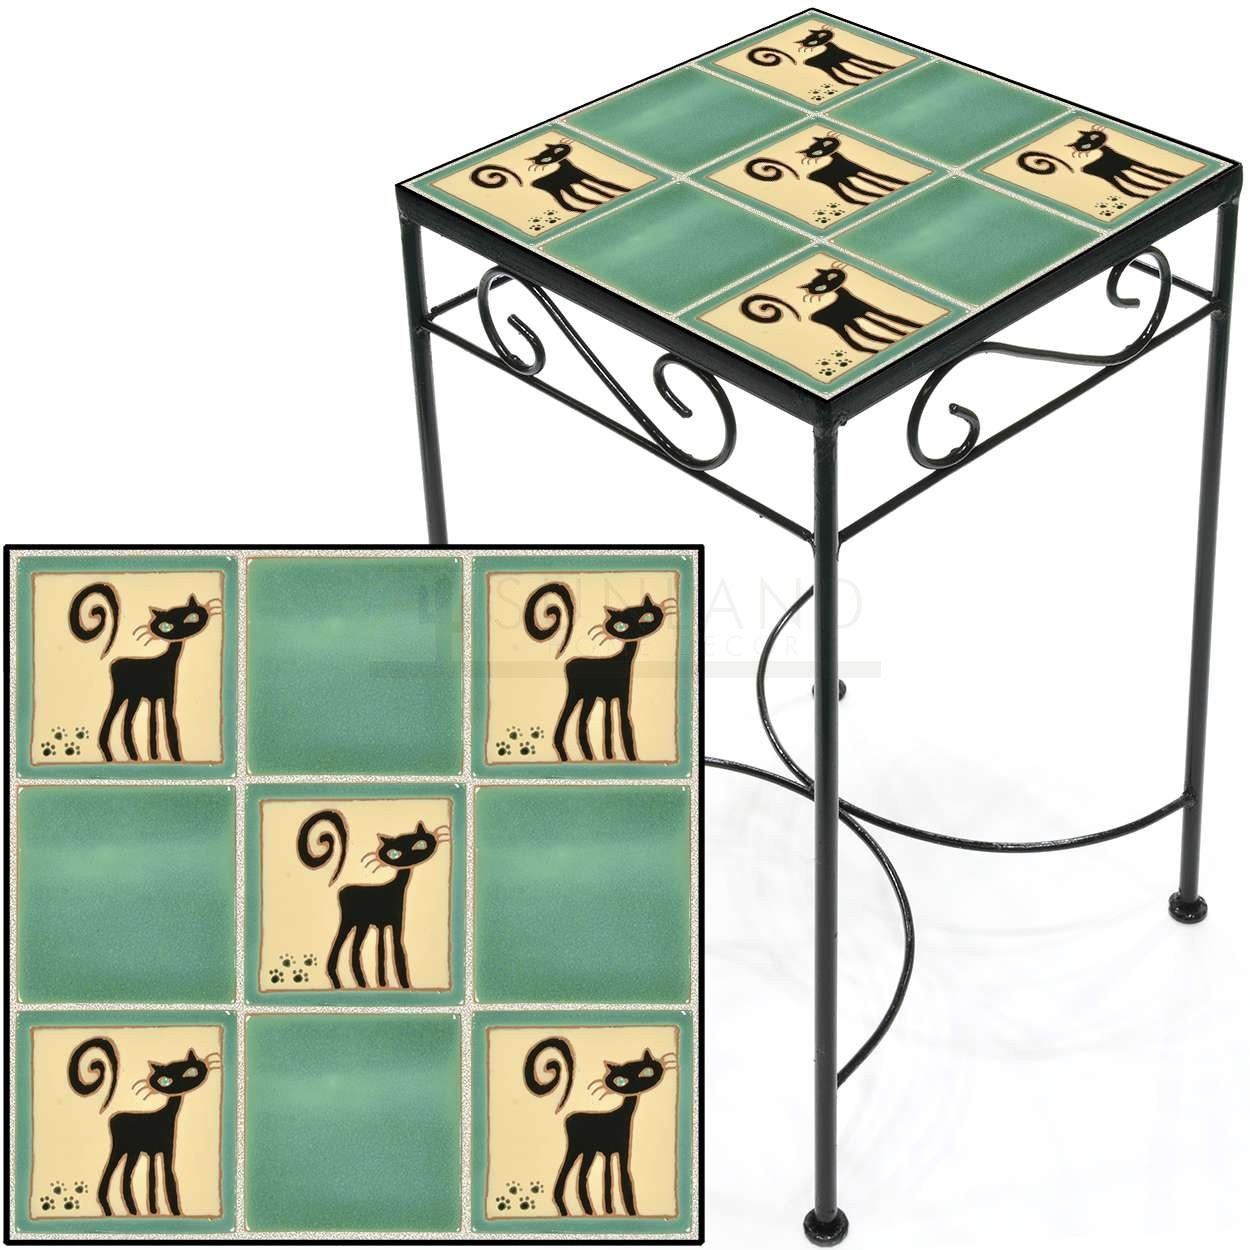 tile accent table black cats jade tall save square metal and ikea living room sets ceiling lights teal home accents modern contemporary coffee peacock lamp round with drawers